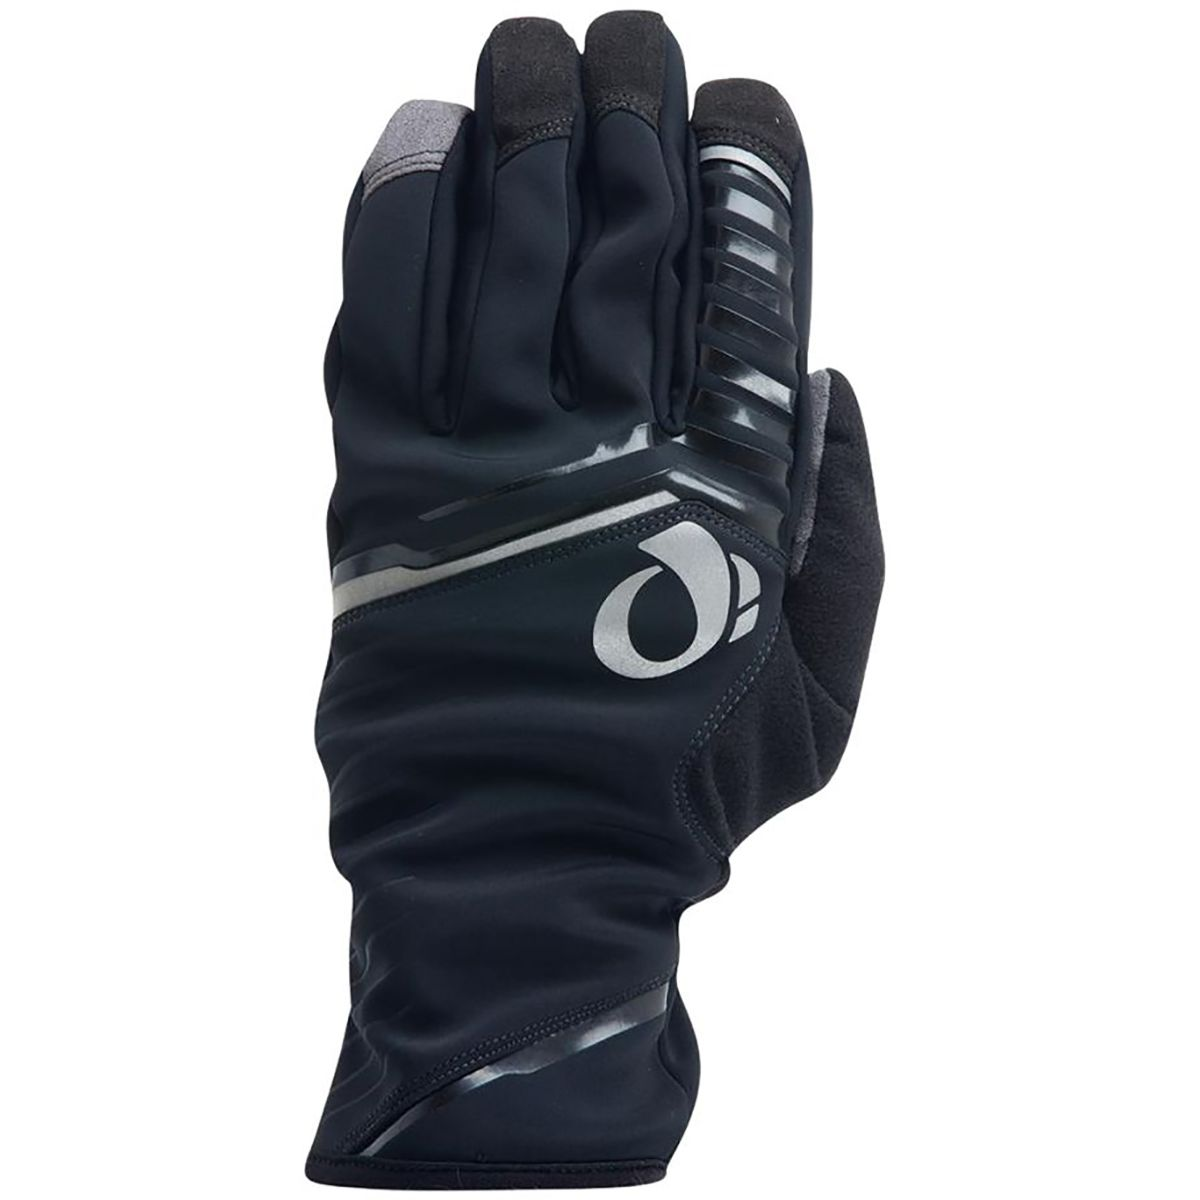 Mens winter gloves xxl - Pearl Izumi P R O Amfib Gloves